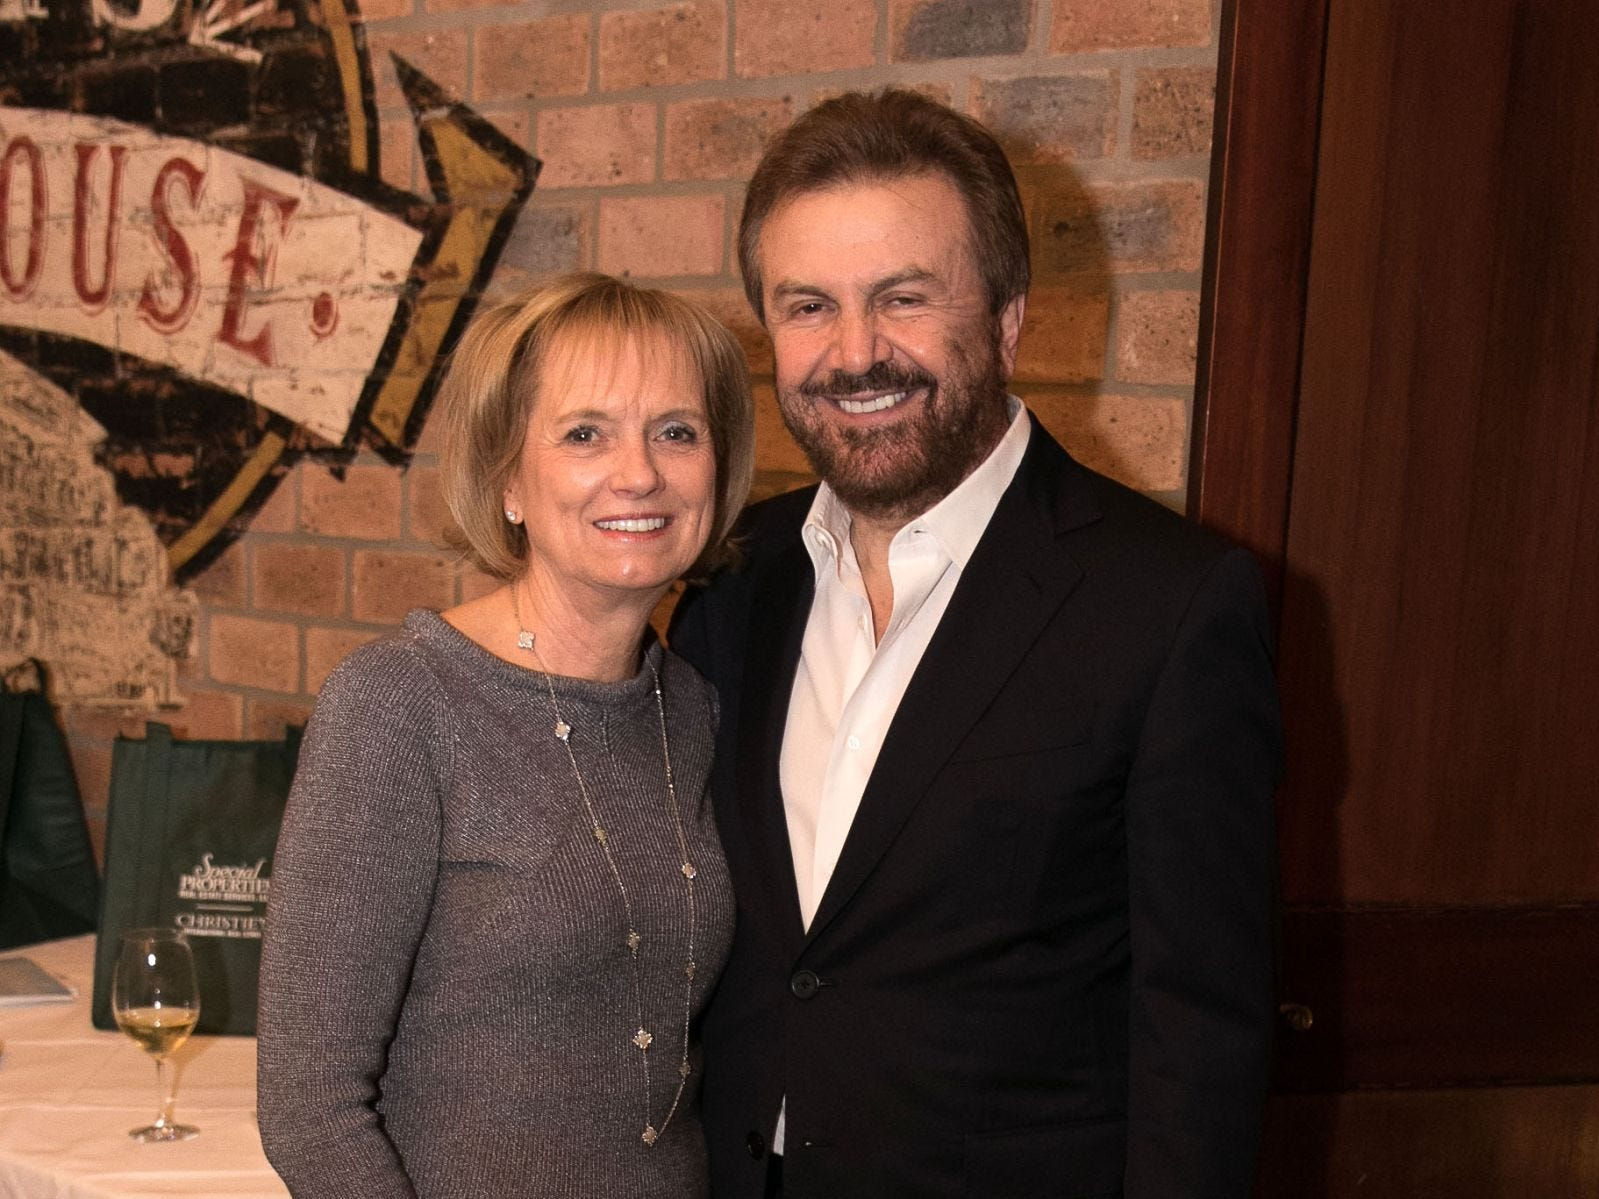 Darlene Bandazian, Ilija Pavlovic. Christina Gibbons of Special Properties held a cocktail reception to acknowledge her clients at Roots Steakhouse in Ridgewood. 02/07/2019